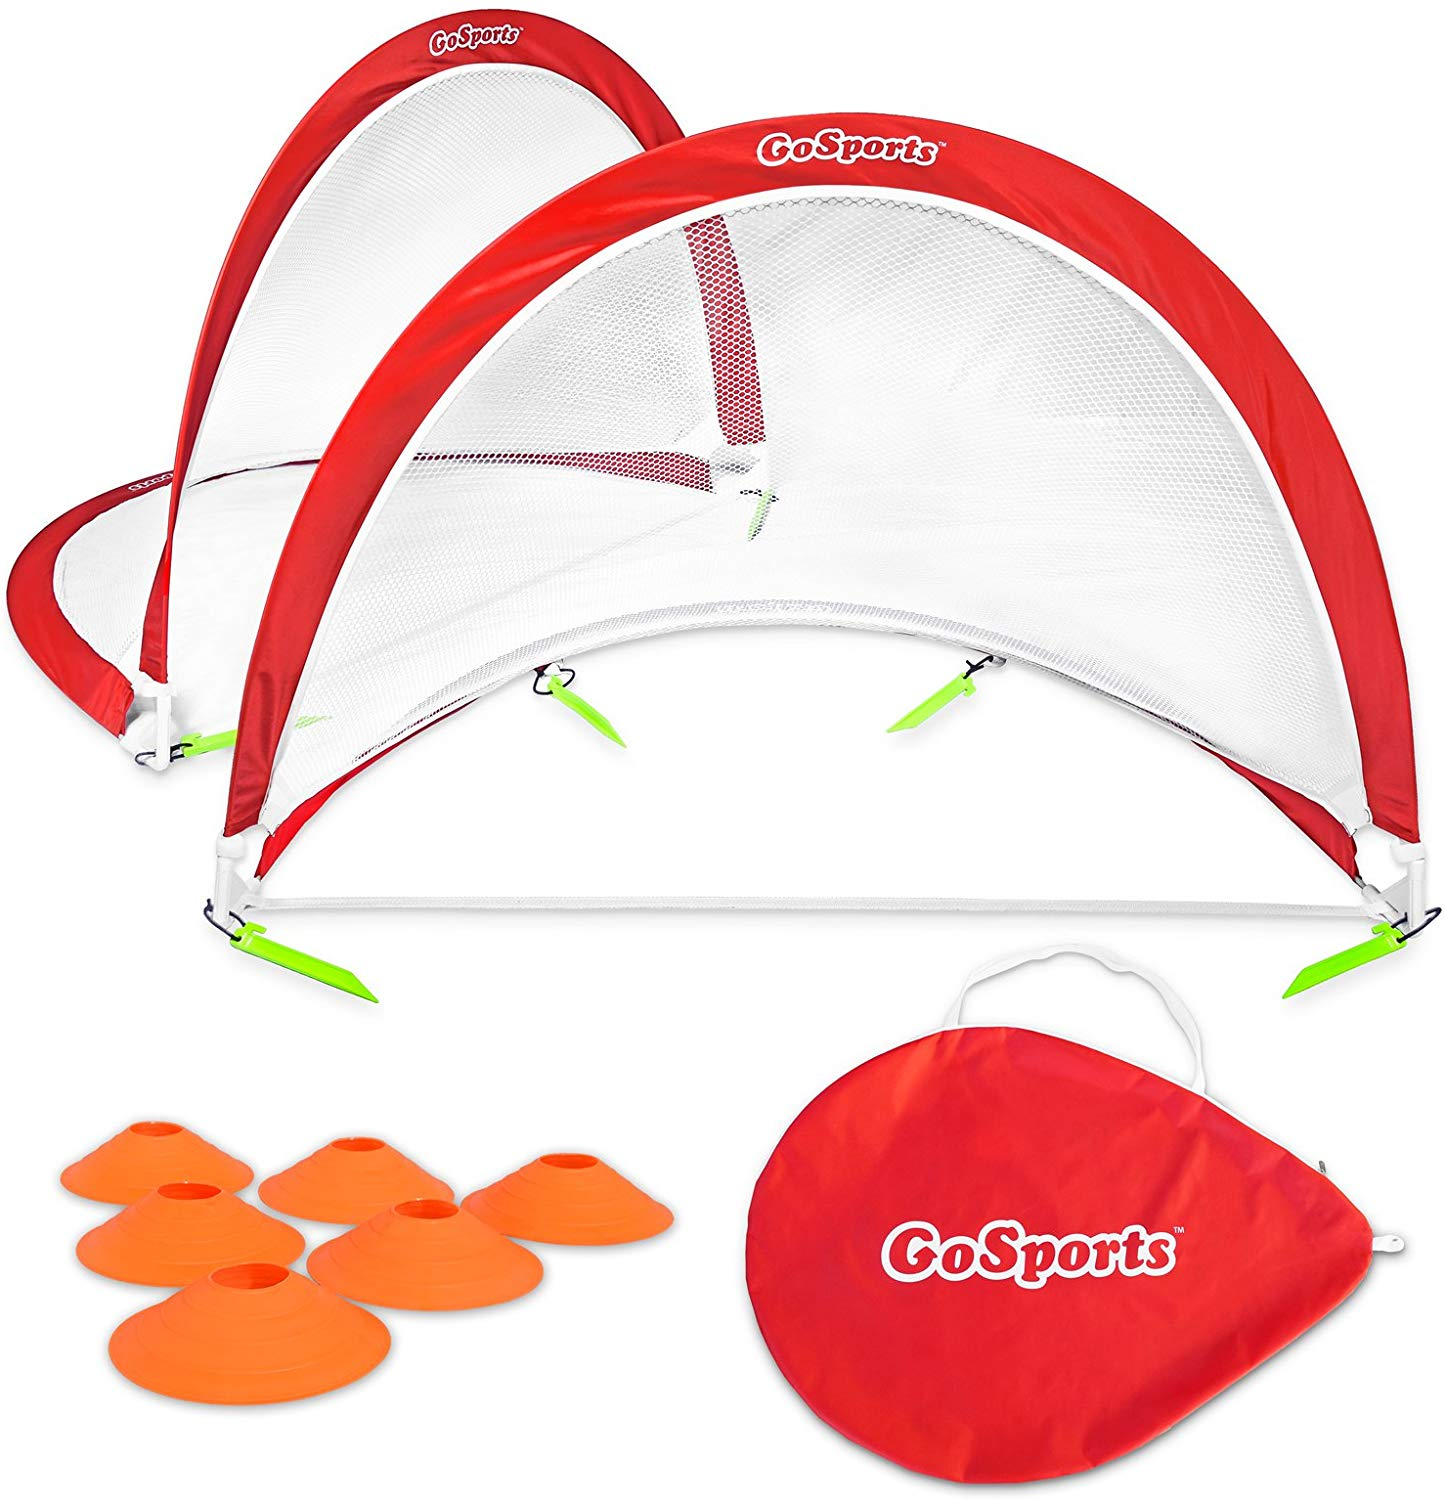 GoSports Foldable Pop Up Soccer Goal Nets, Set of 2, With Agility Training Cones